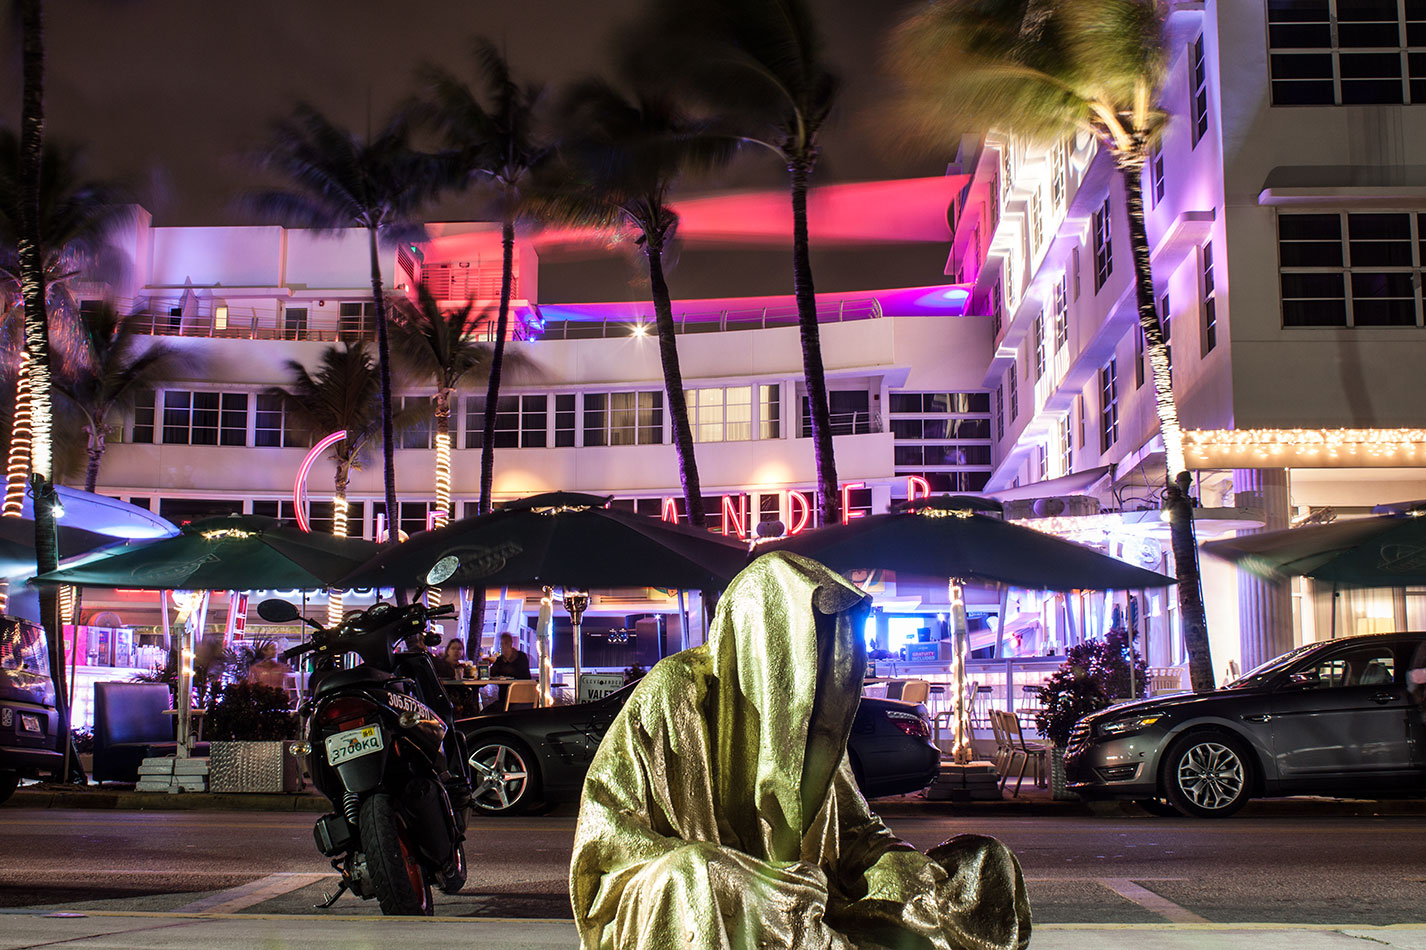 art-basel-miami-beach-fair-usa-florida-bass-museum-guardians-of-time-manfred-kili-kielnhofer-contemporary-fine-art-modern-arts-design-antiques-sculpture-6462